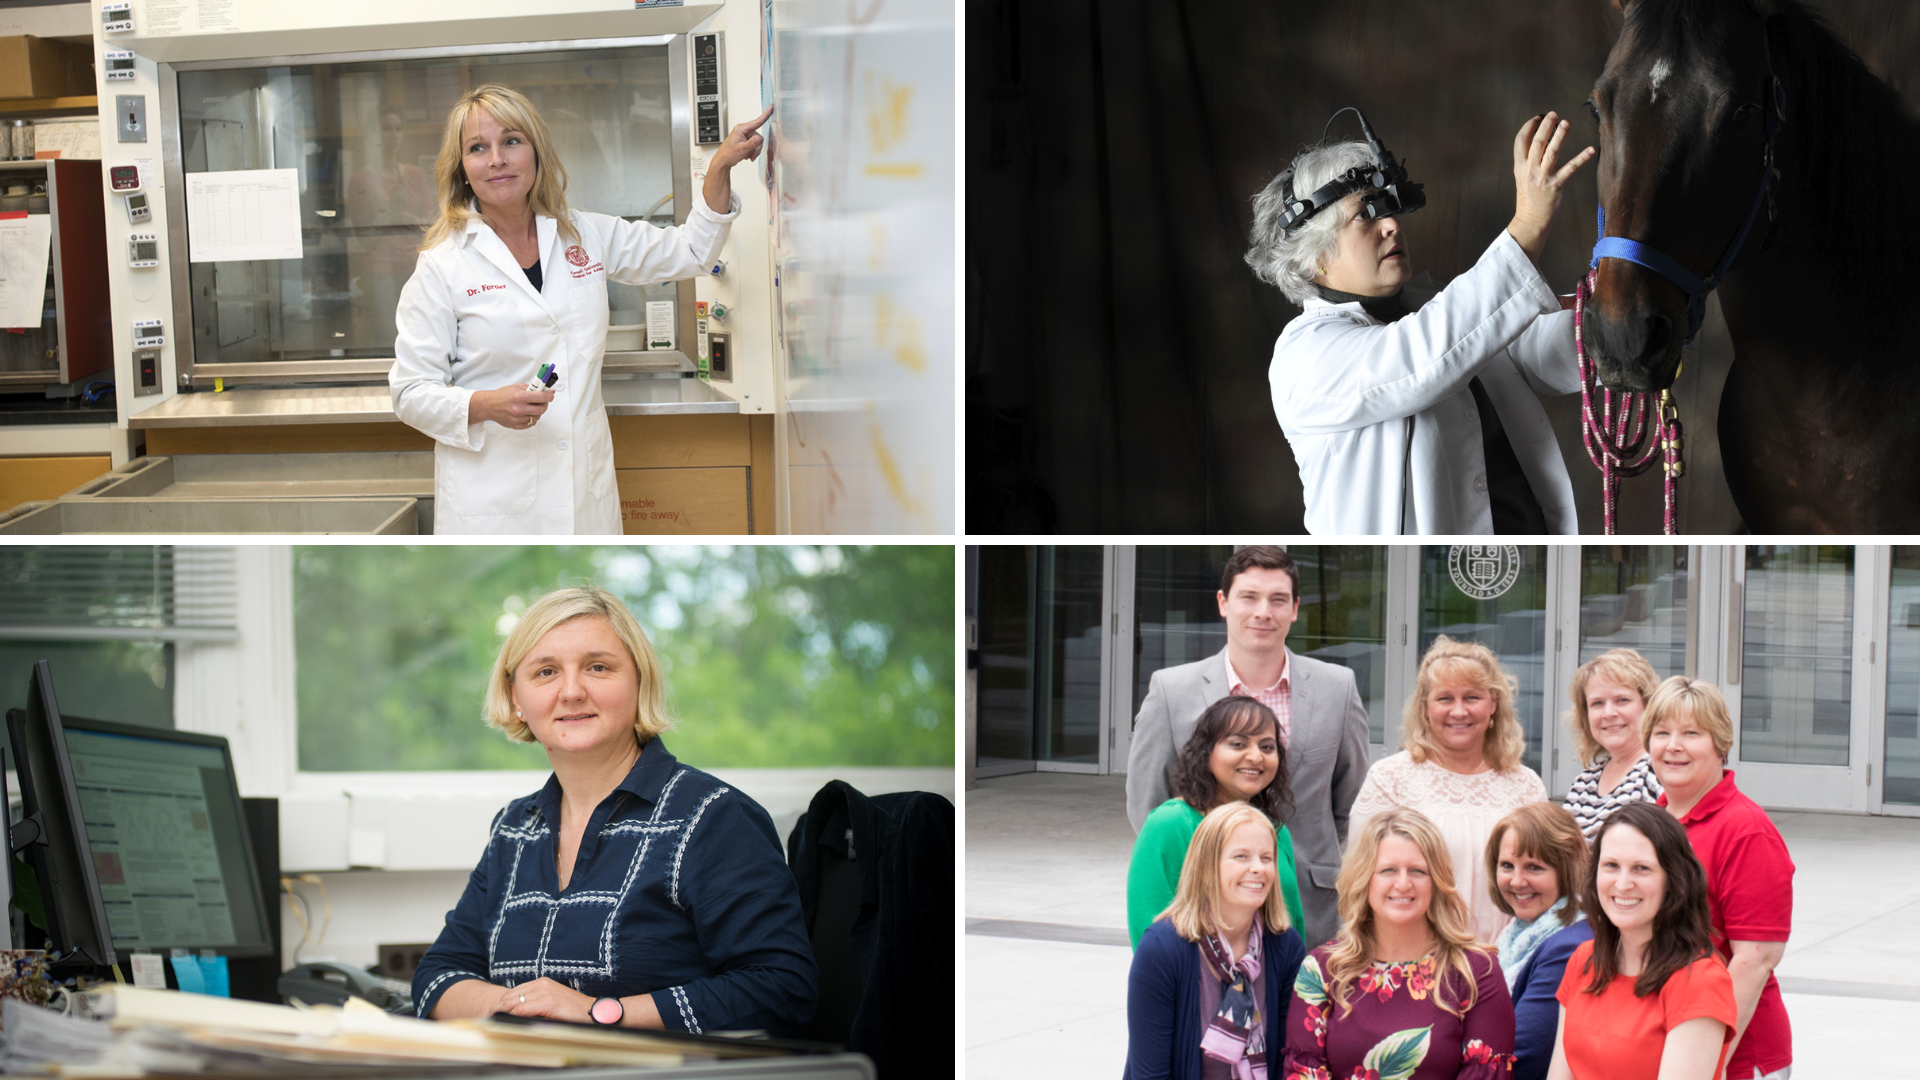 Collage of winners, with Fortier in a lab coat, Irby examining a horse, Ivanek at a desk, and Patel with the HR team outside the entrance to the college